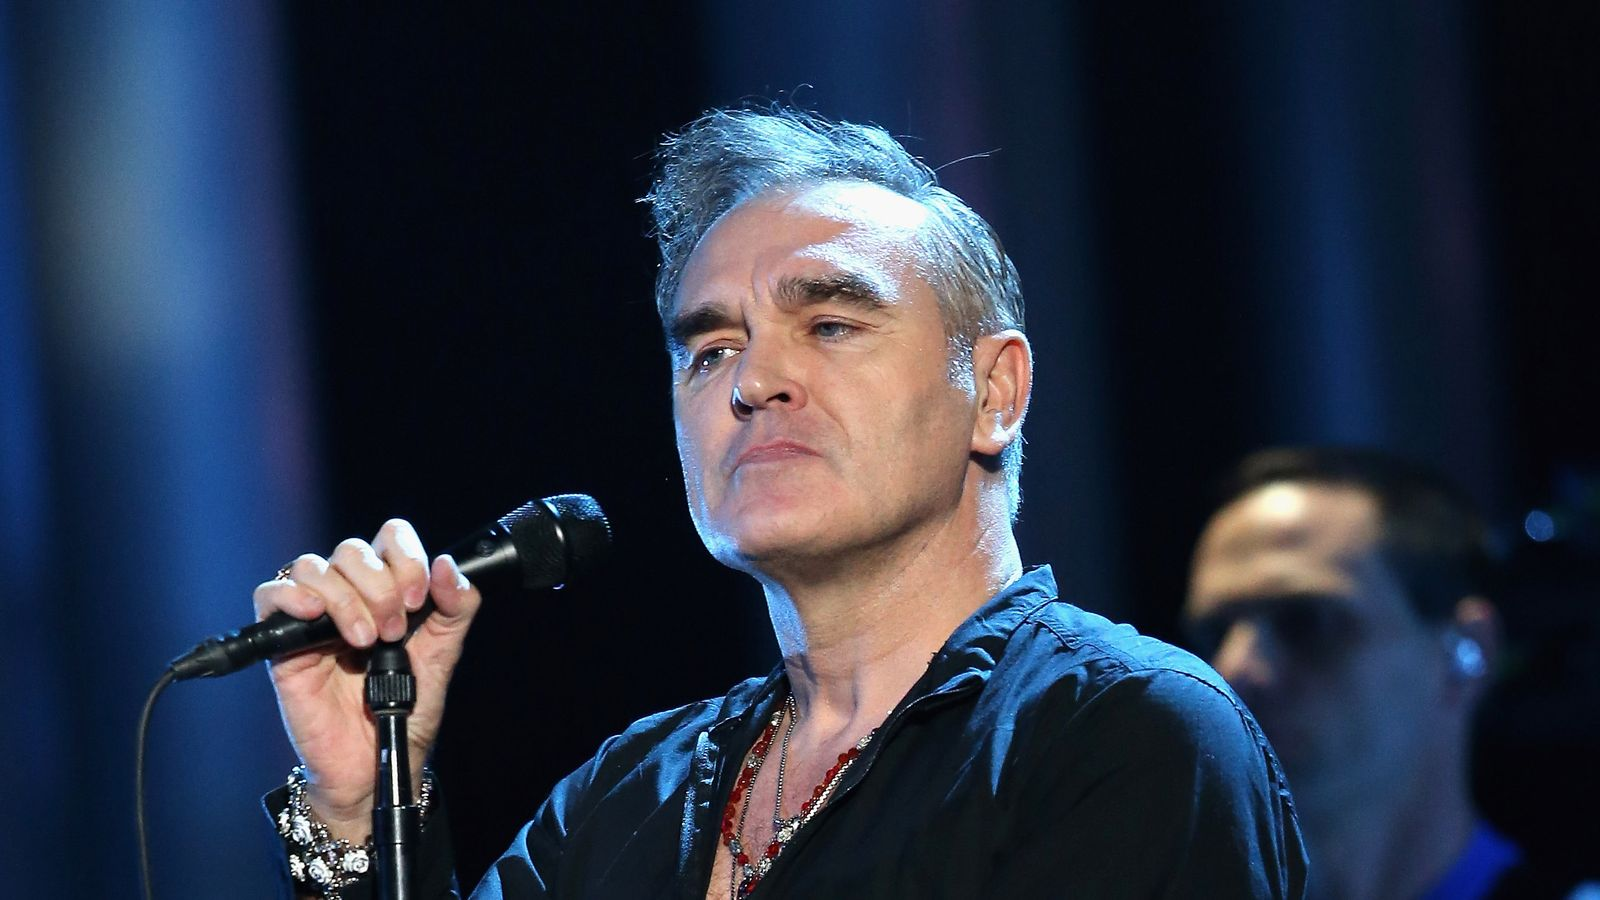 Morrissey posters axed from train stations over star's far-right support